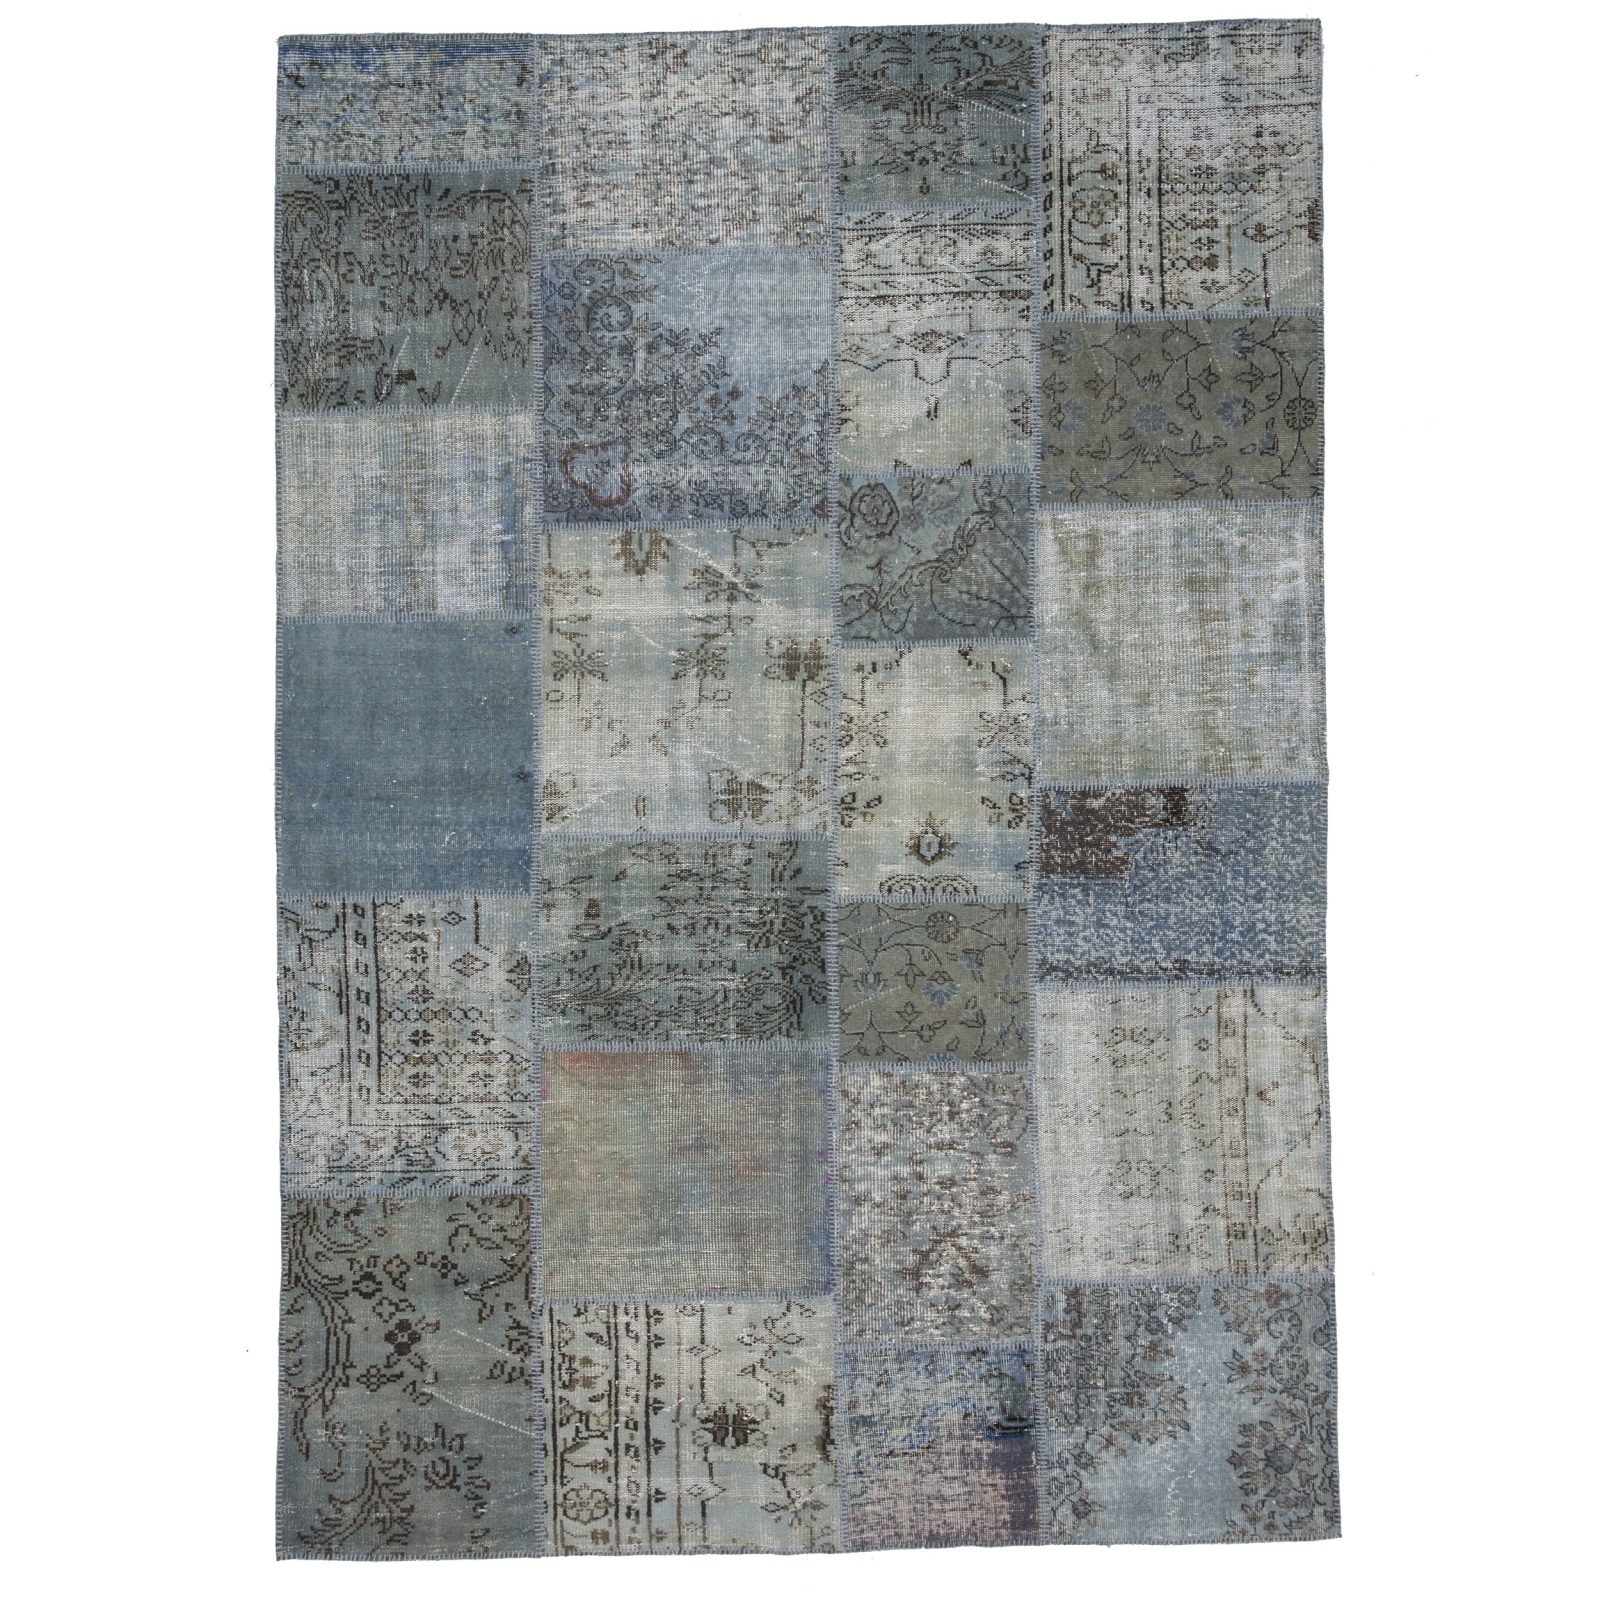 gris bleu vintage tapis de patchwork 210x303cm. Black Bedroom Furniture Sets. Home Design Ideas